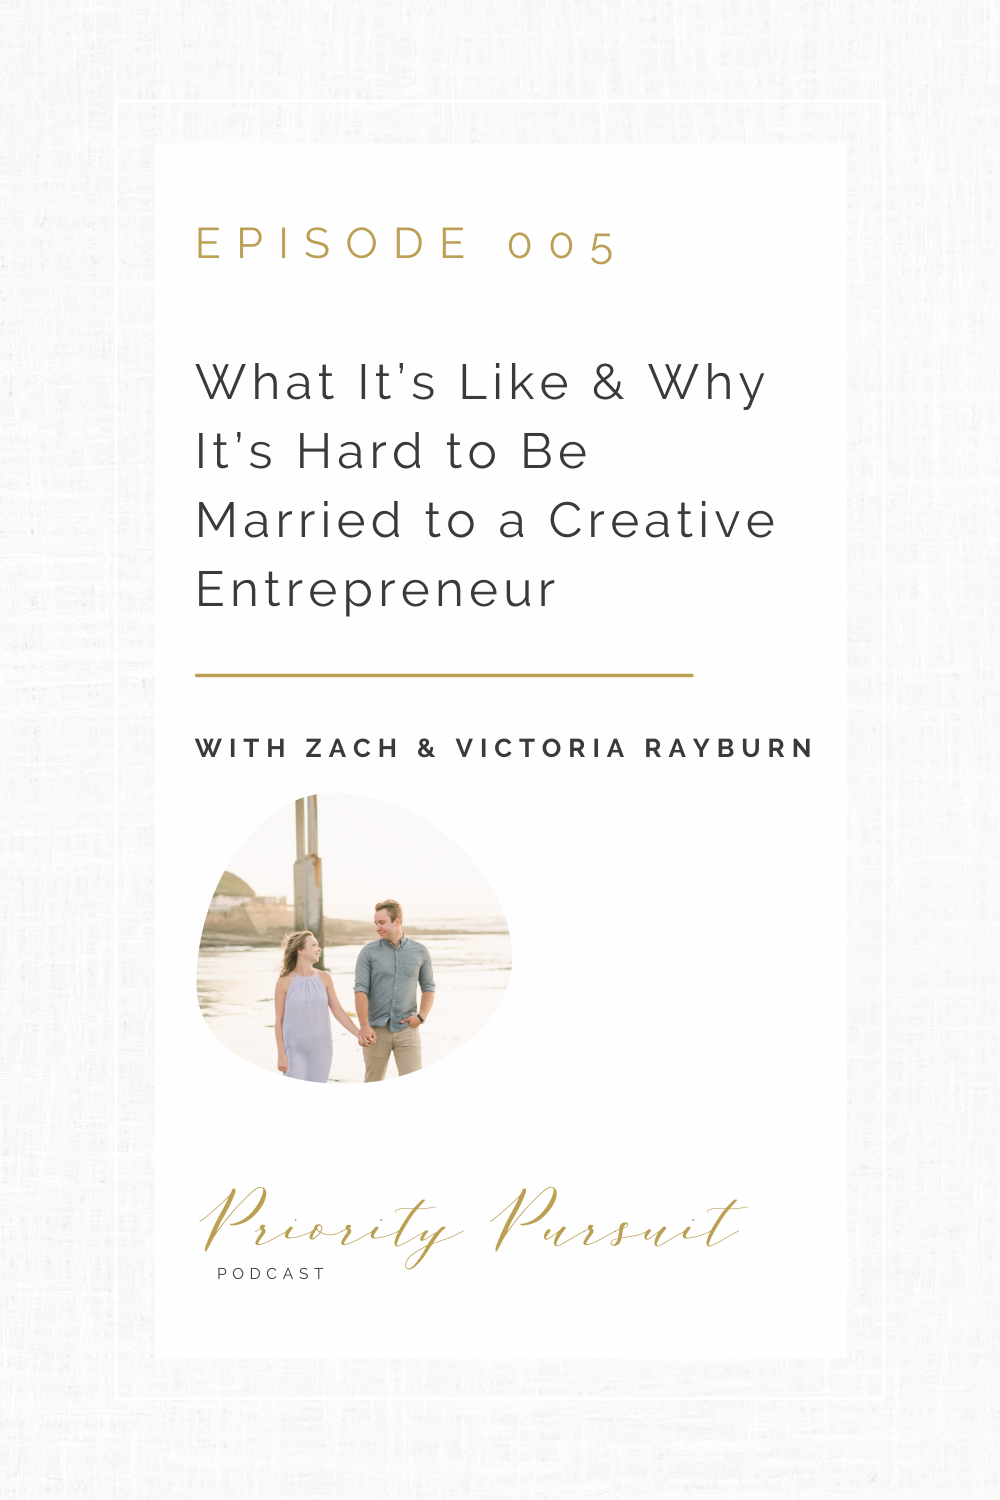 Zach Rayburn explains what it's like and why it's hard to be married to a creative entrepreneur so entrepreneurs can better love their spouses on the Priority Pursuit Podcast.